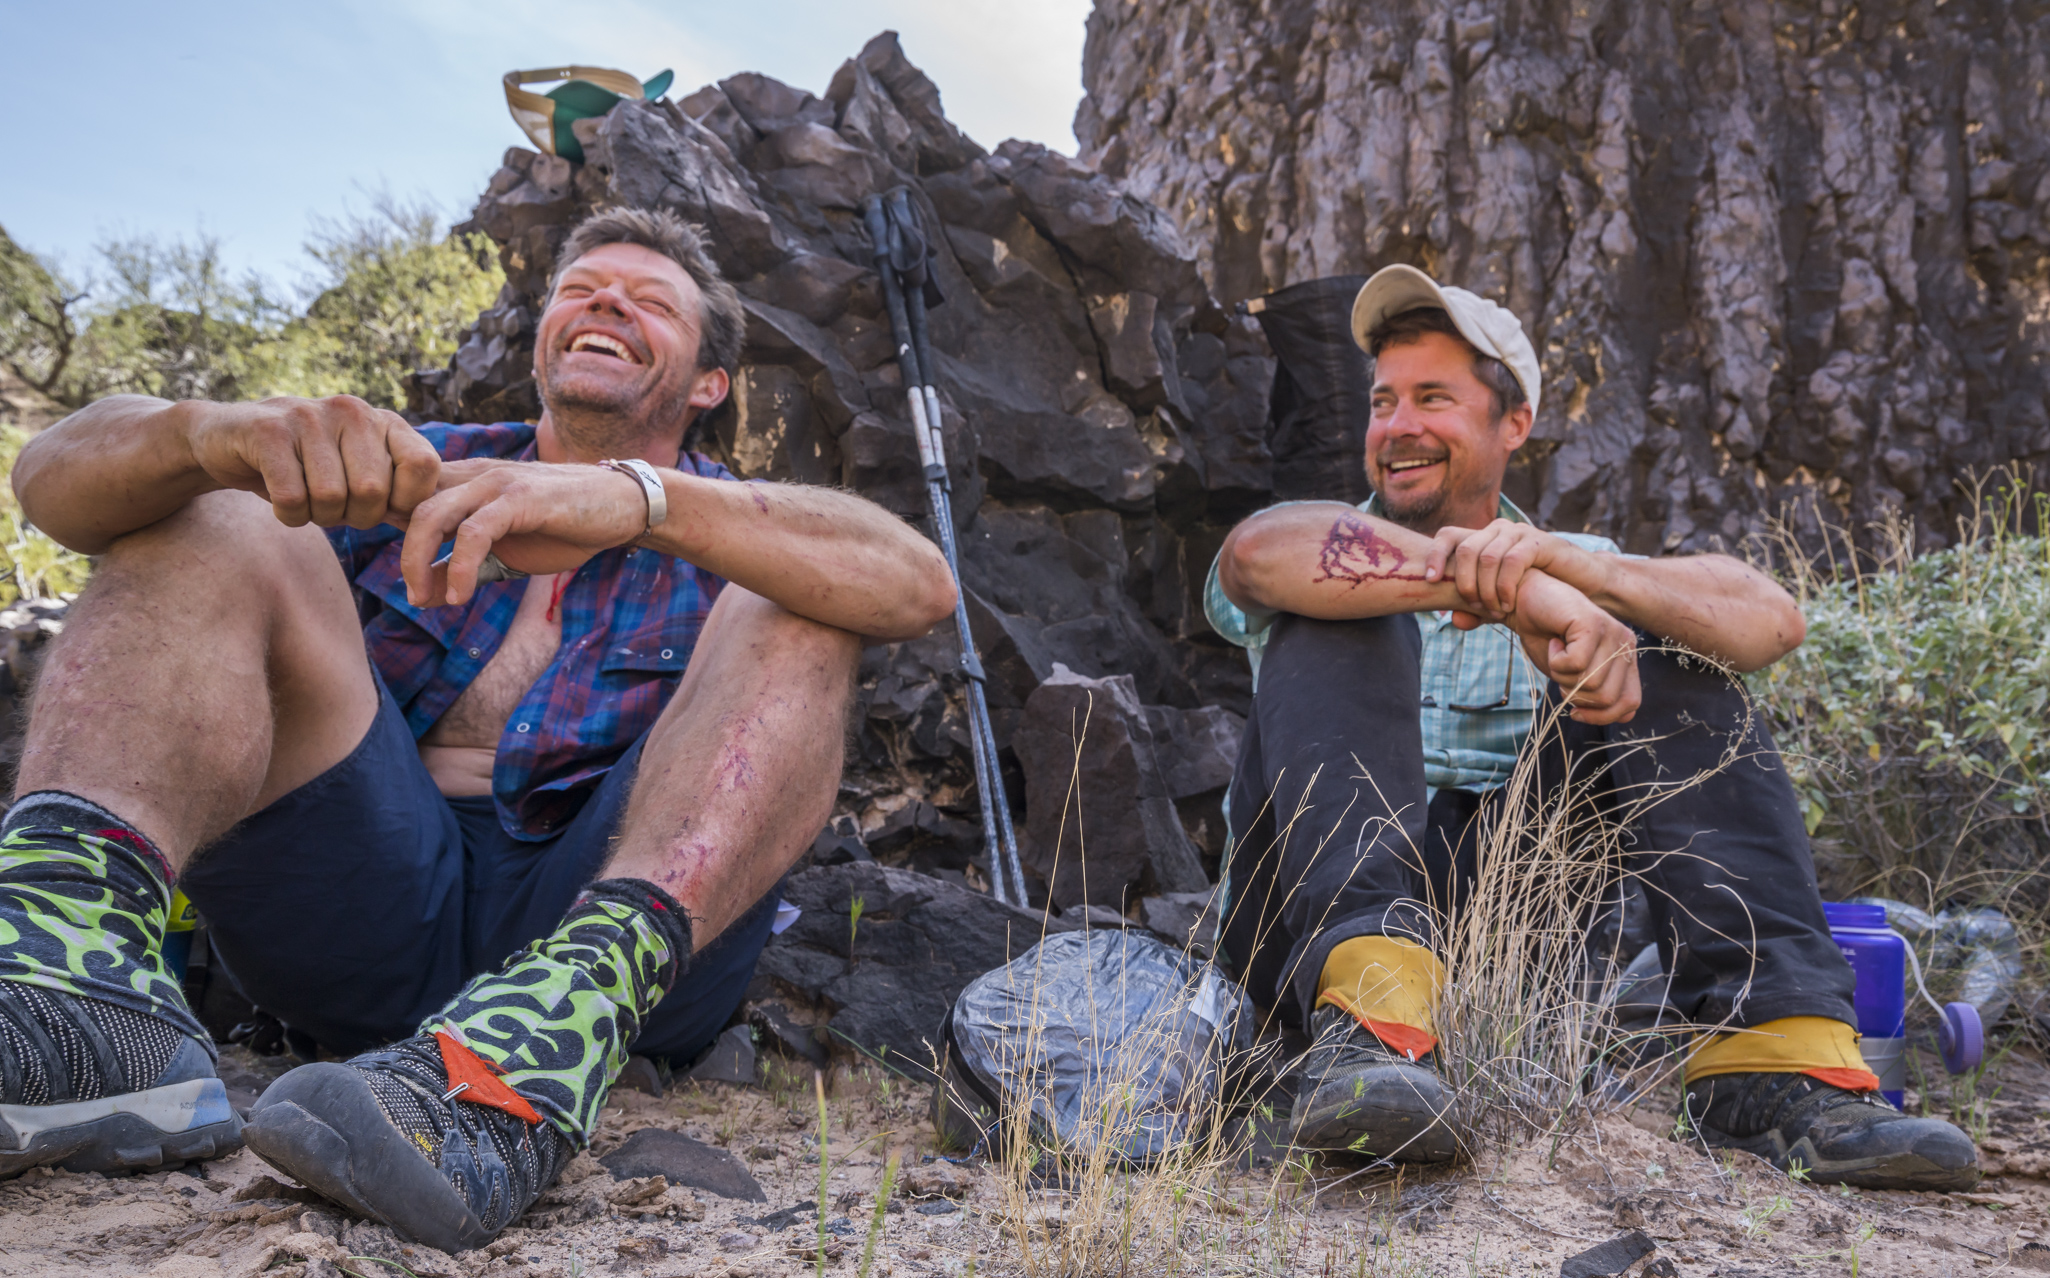 Kevin Fedarko and Pete McBride sit against a rock. They are outfitted in hiking shoes. They laugh.